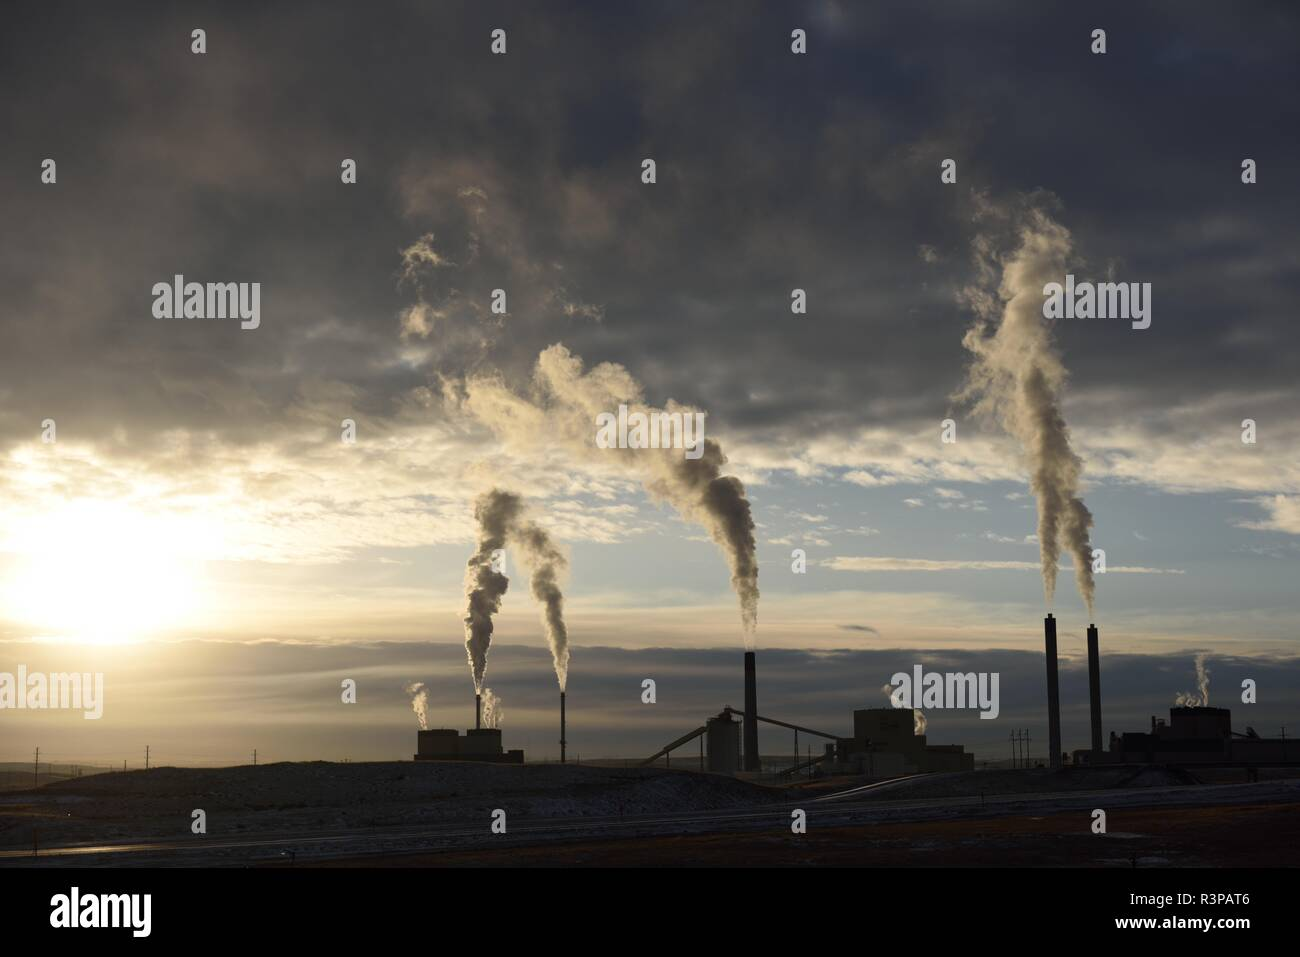 Silhouette of smoke stack emissions rising from a coal-fired power plant near Gillette, Wyoming / USA. - Stock Image